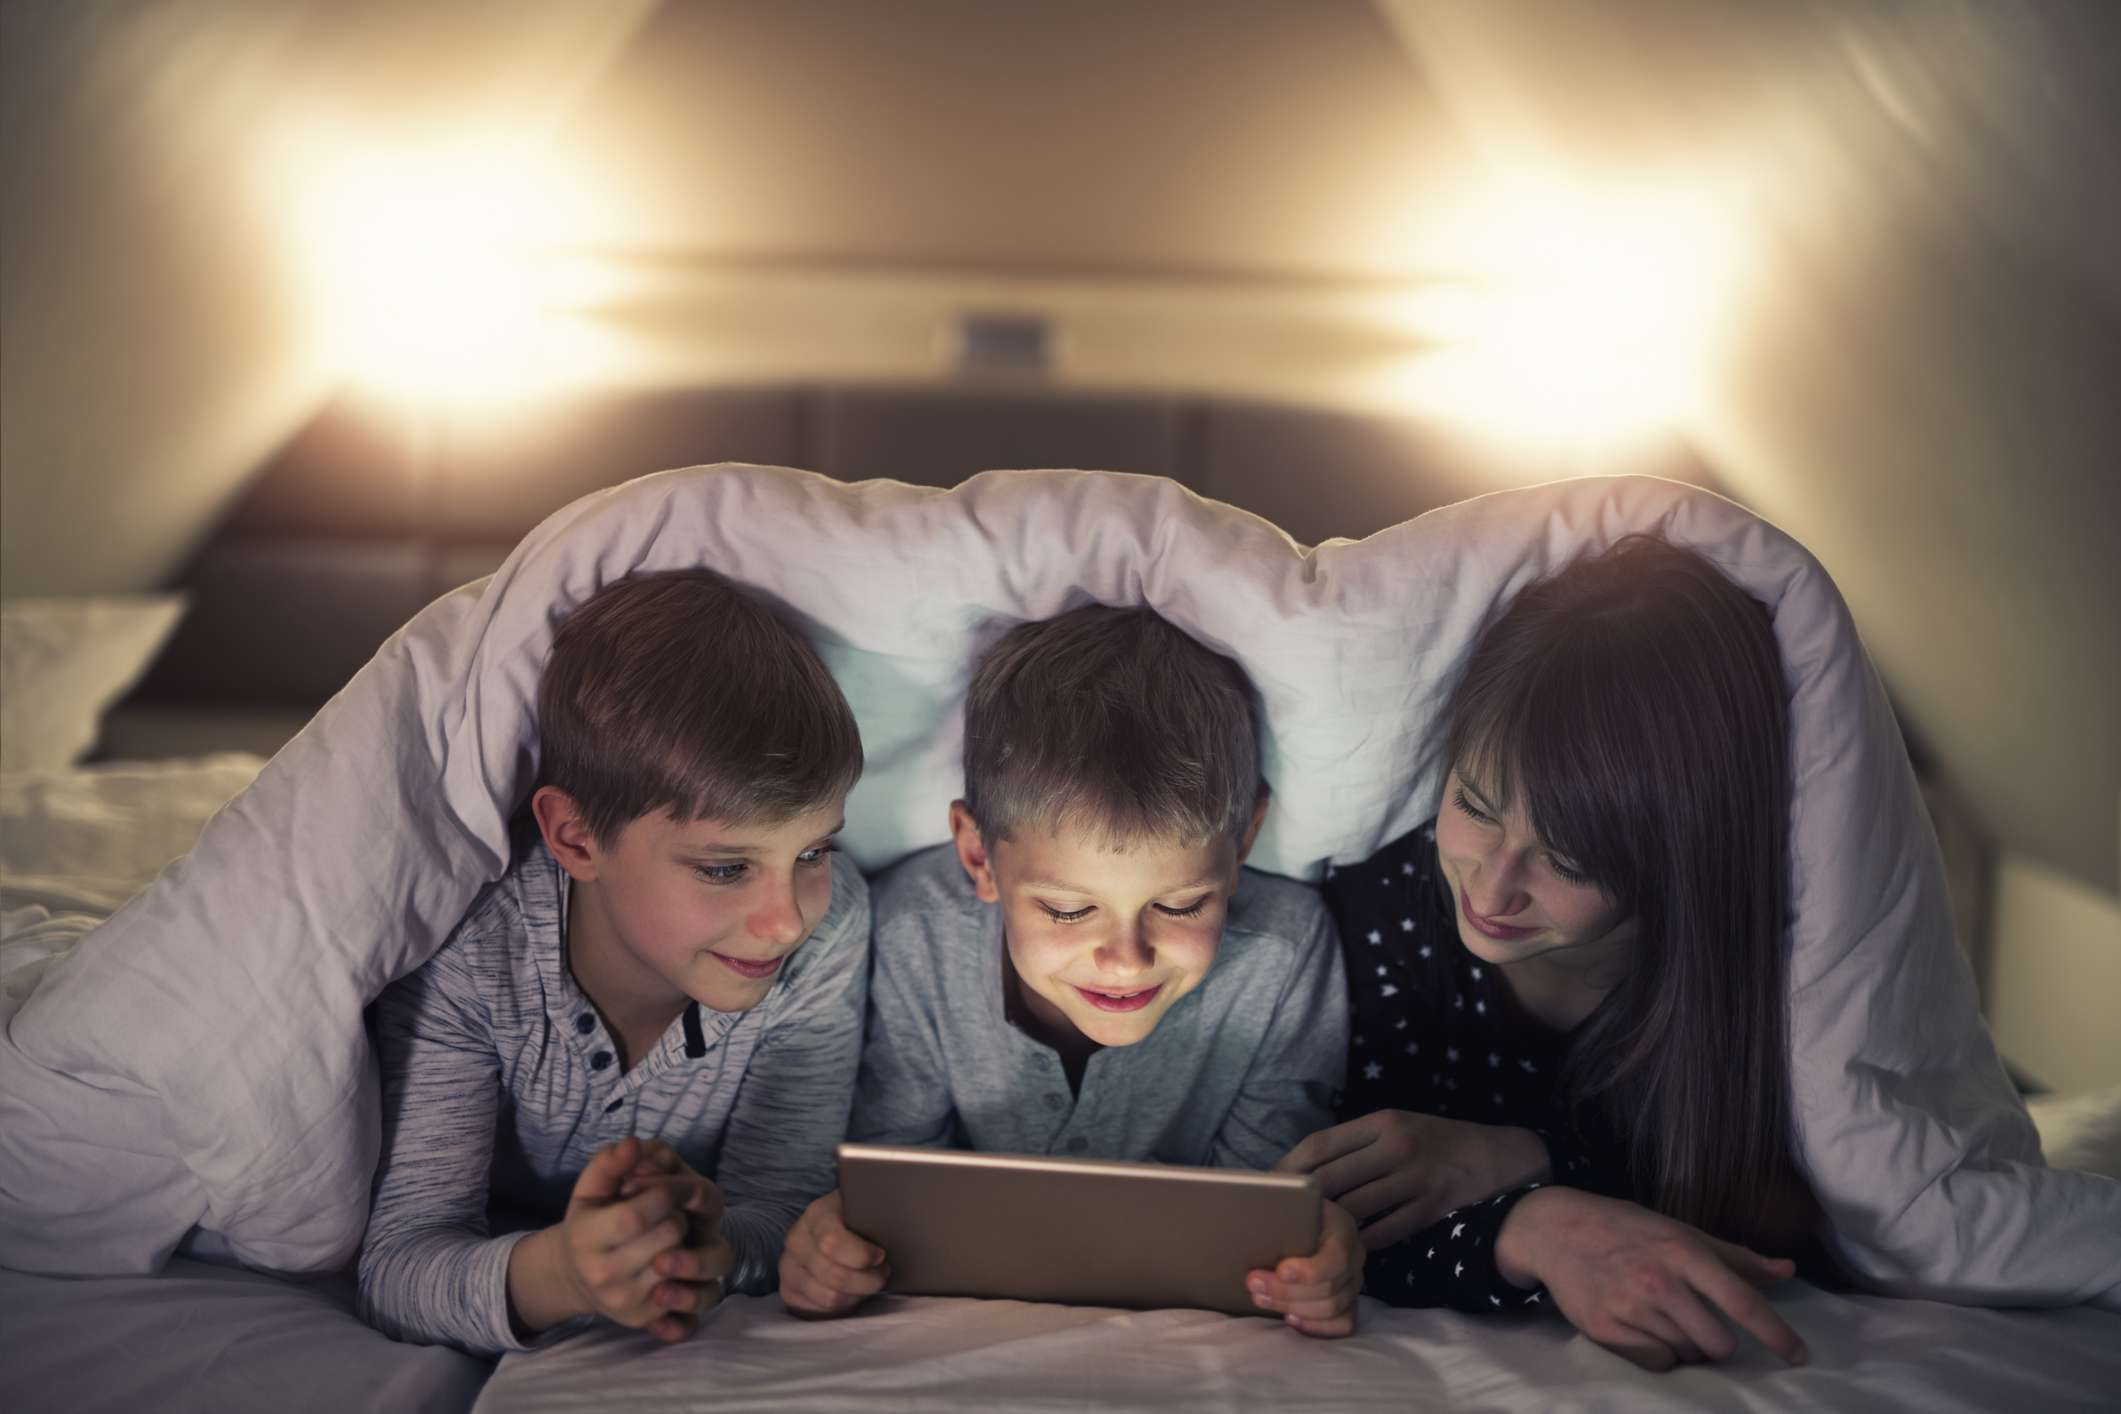 Three children looking at a tablet in bed